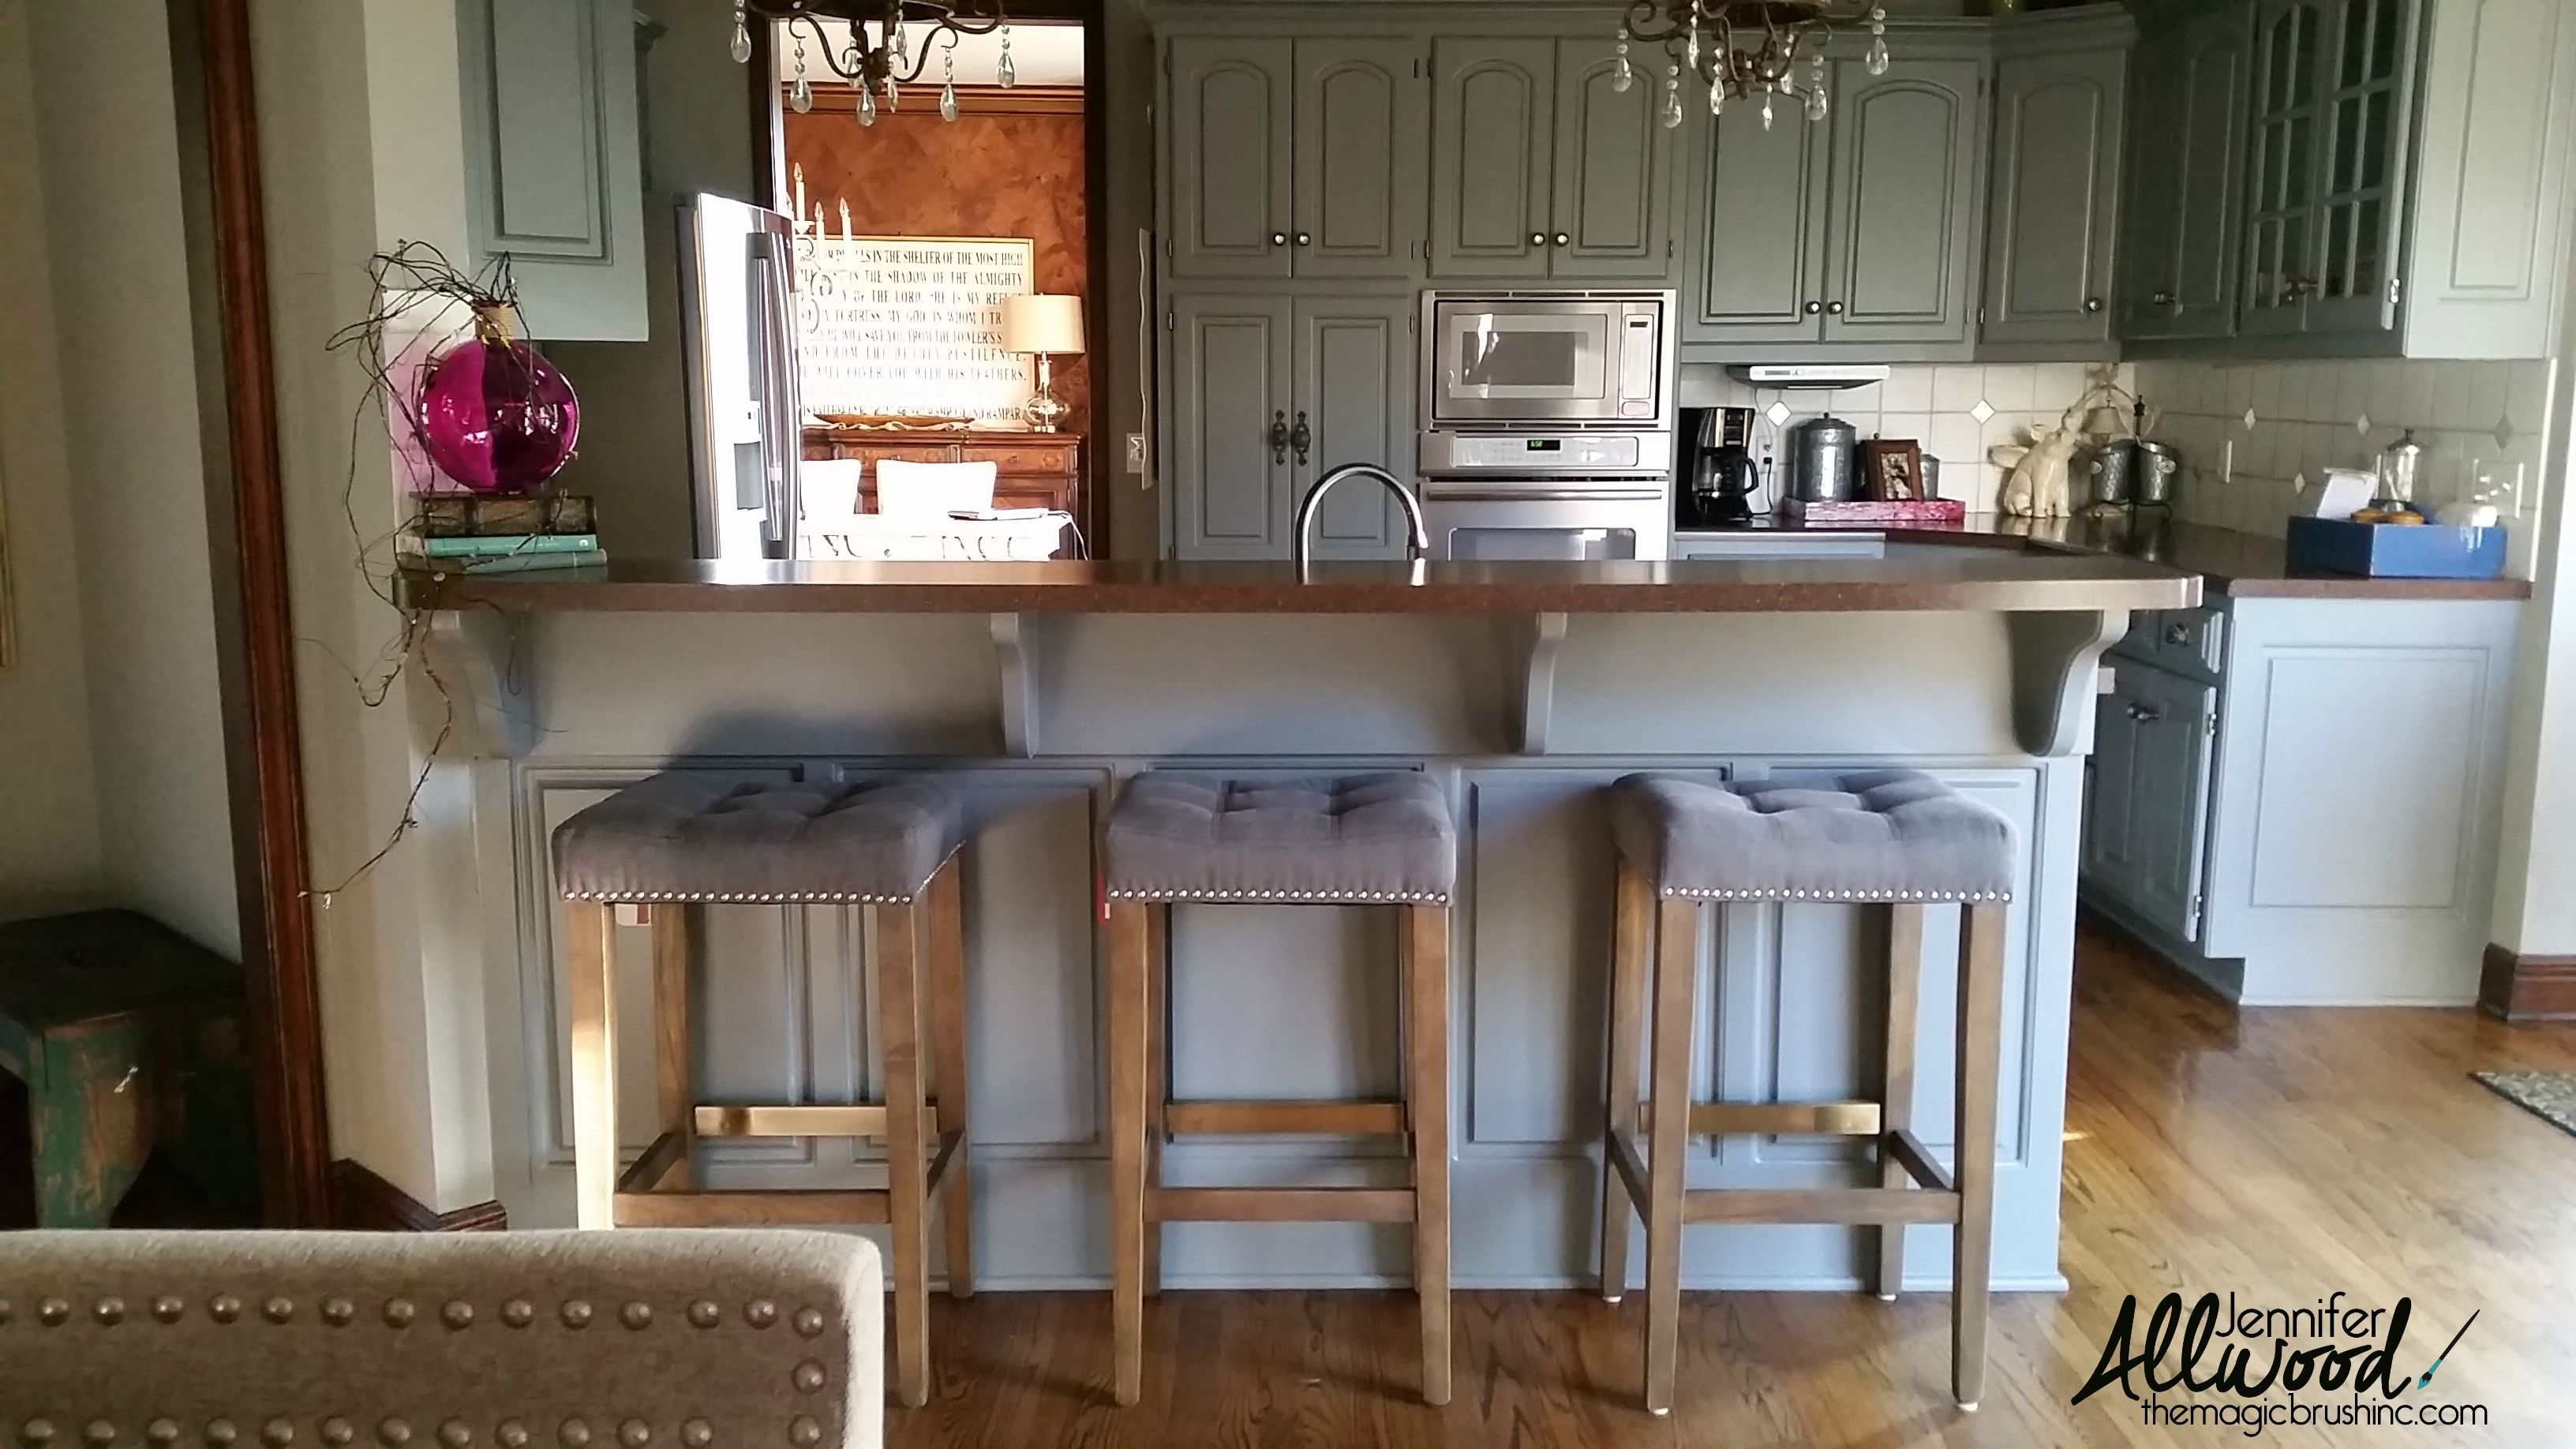 We just updated our kitchen with painted gray cabinets as part of our total house color scheme transformation from golds to gray. It's elegant and modern.